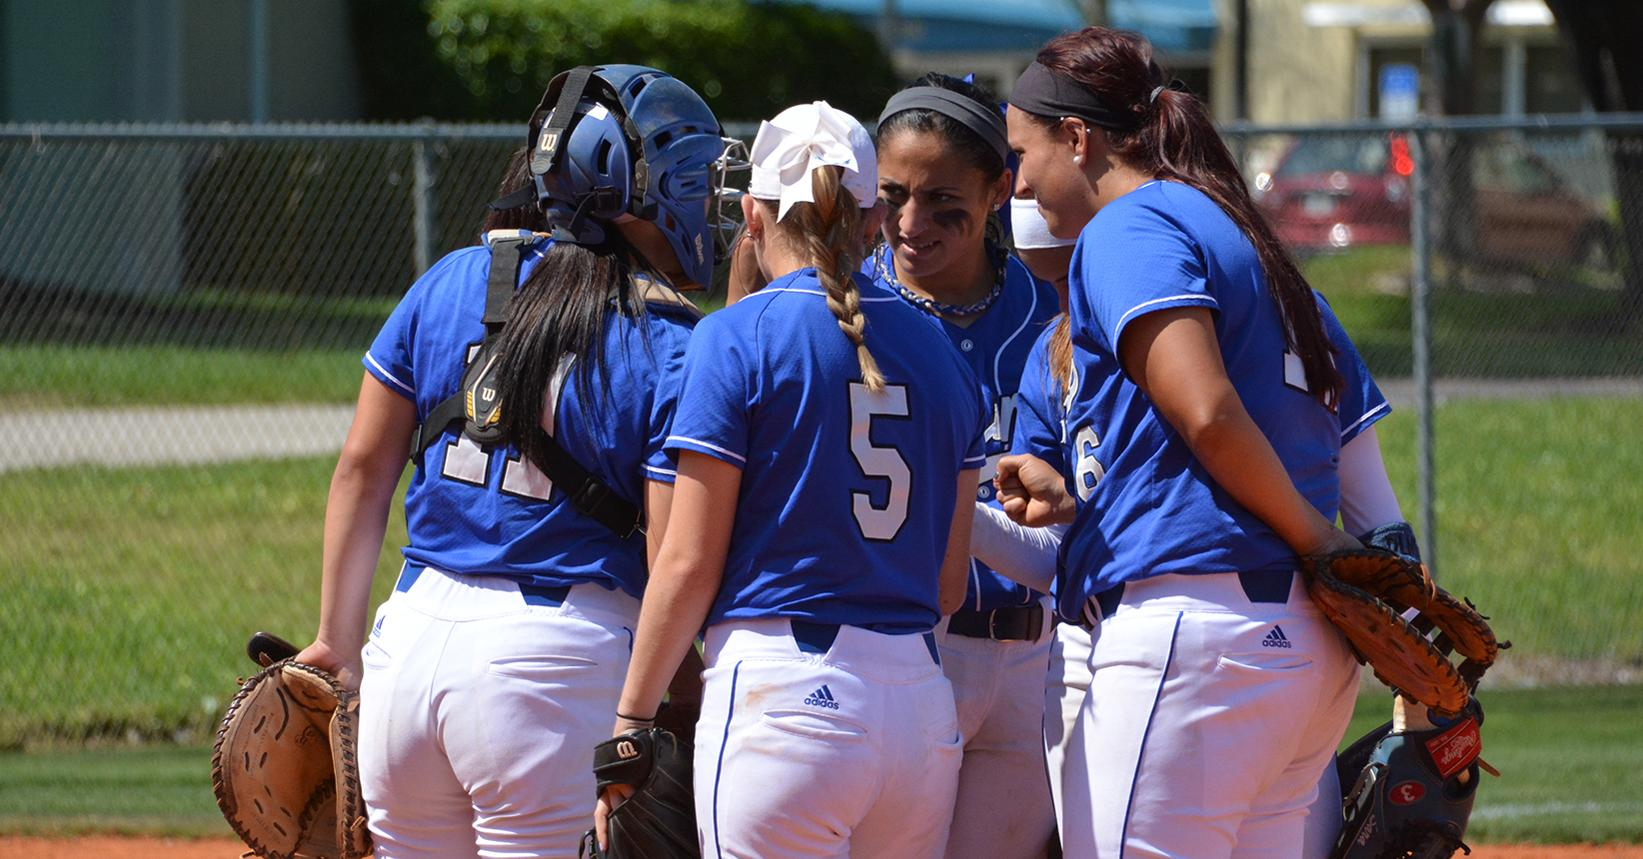 Softball Catchers Need To Chatter  Life In The Fastpitch Lane-4809